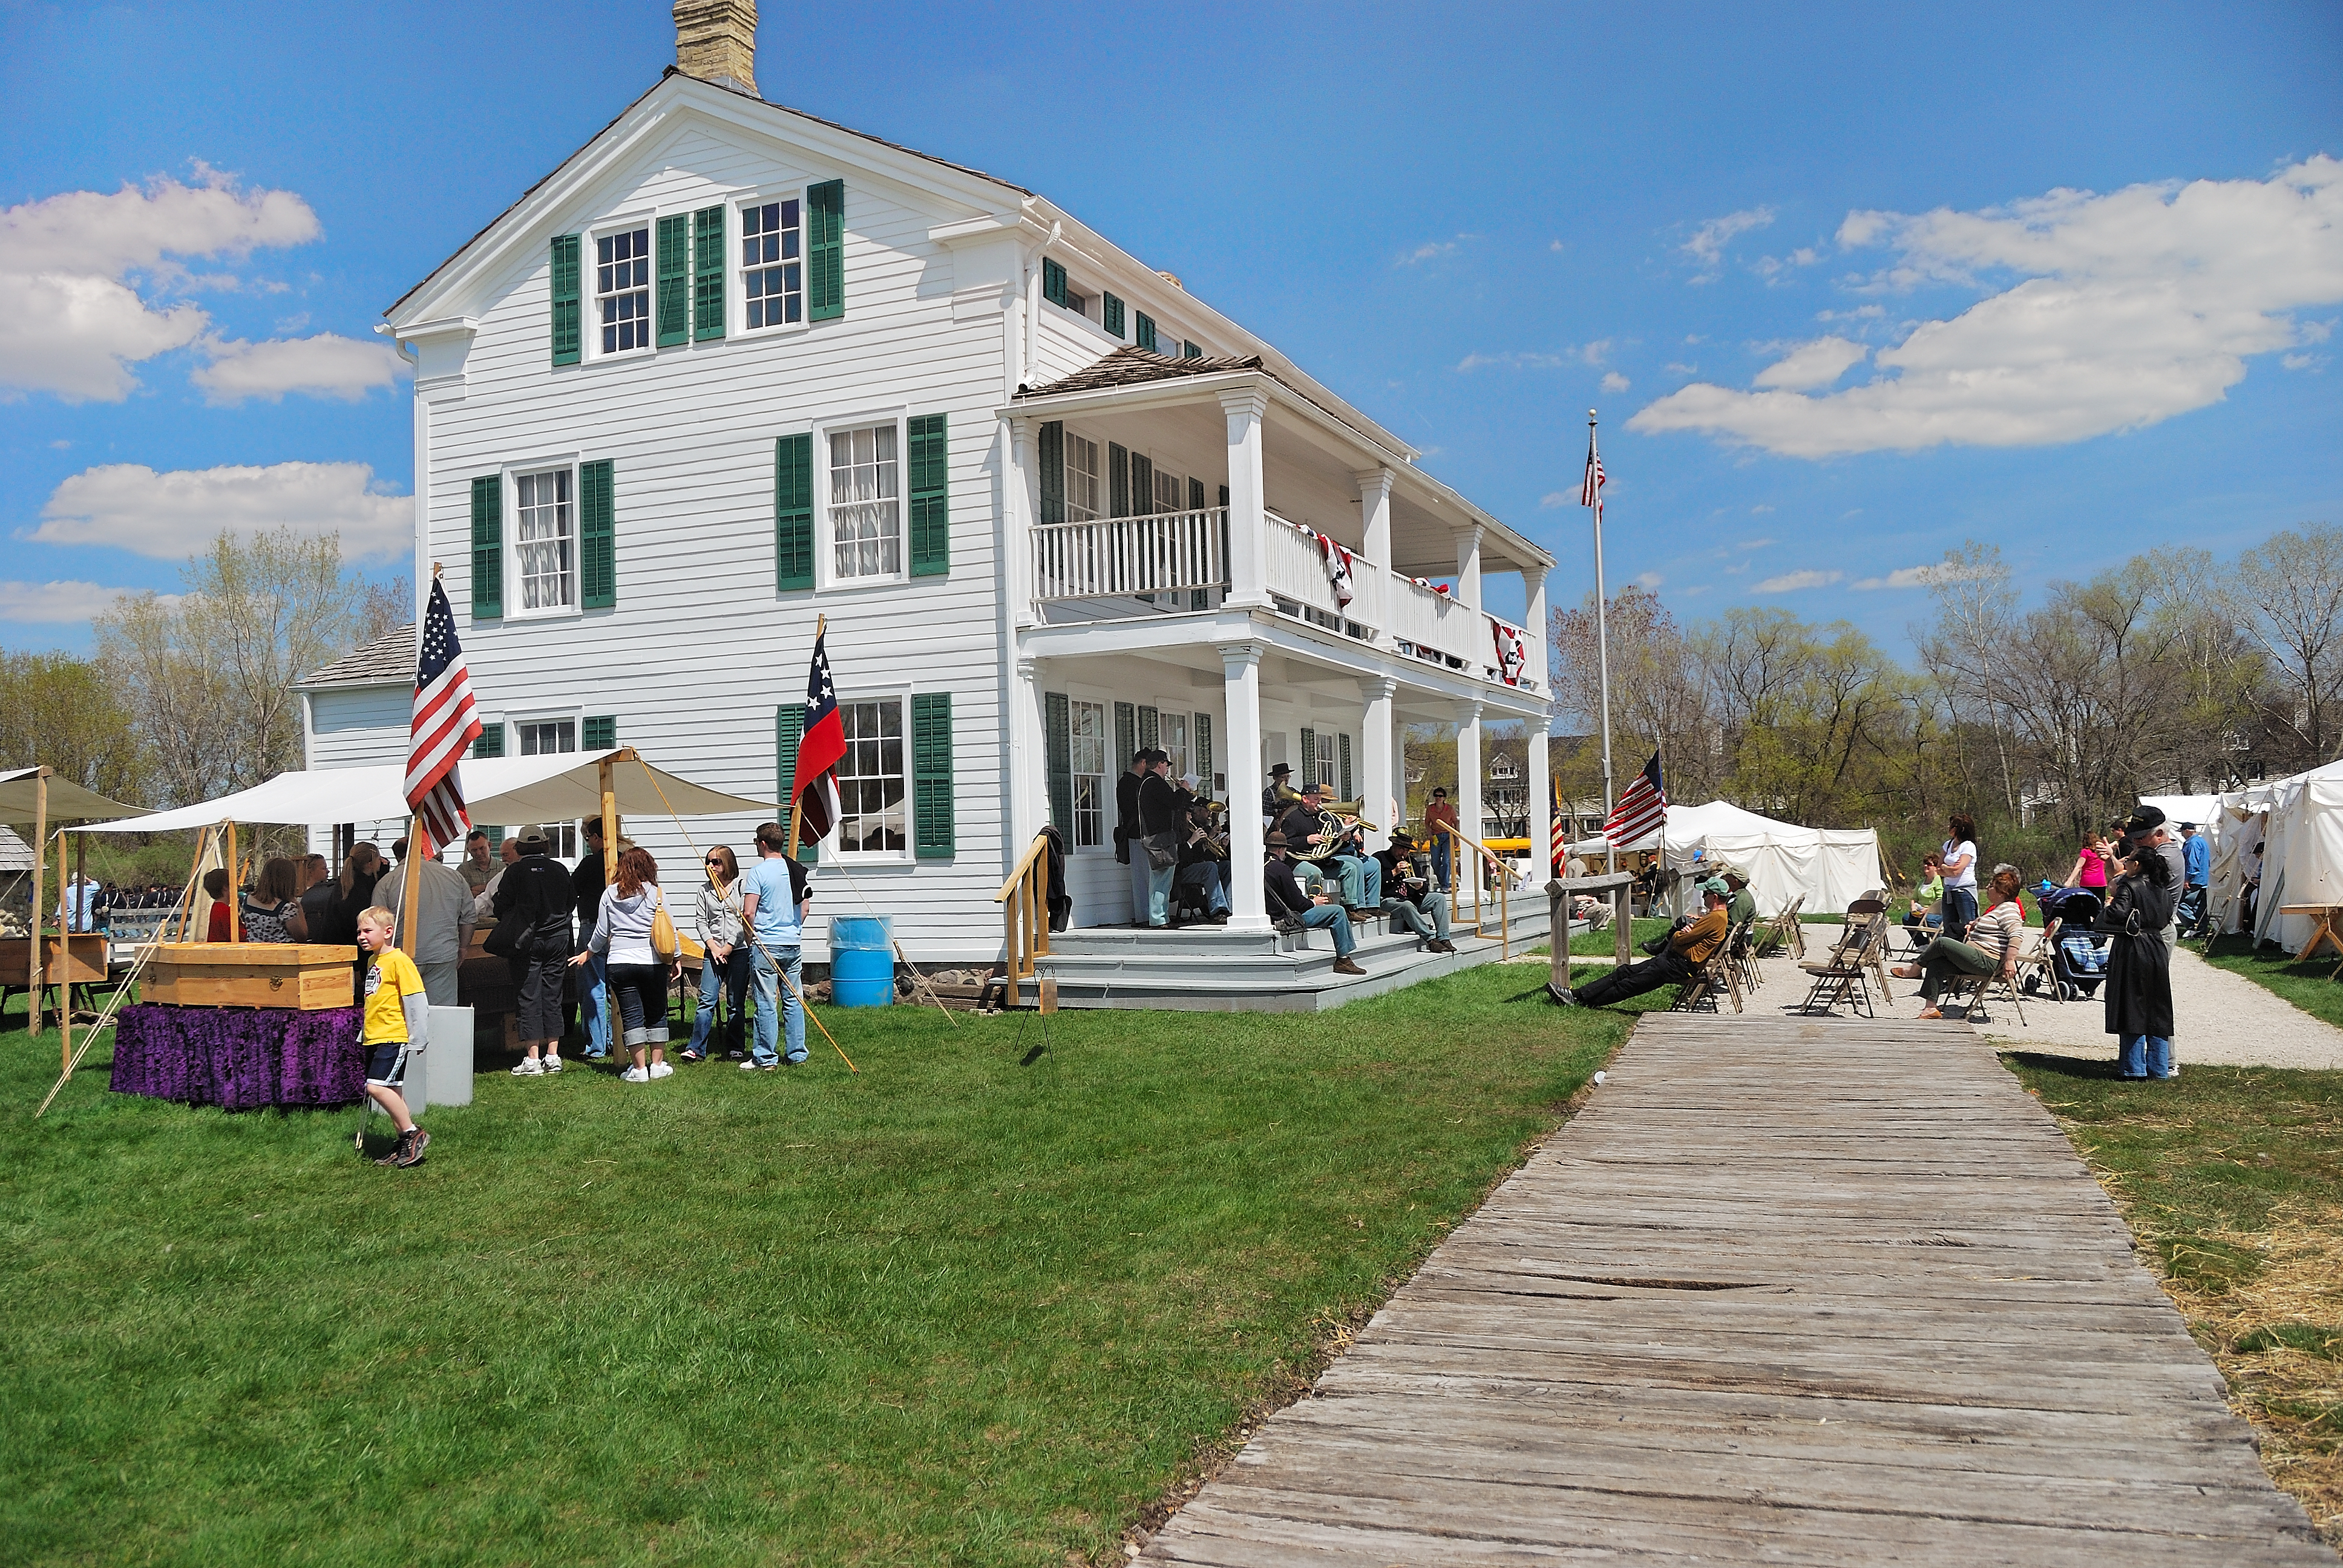 Elmbrook Historical Society in Elm Grove WI, Civil War Reinactment - Photo by Dave (CC BY-NC-ND 2.0)